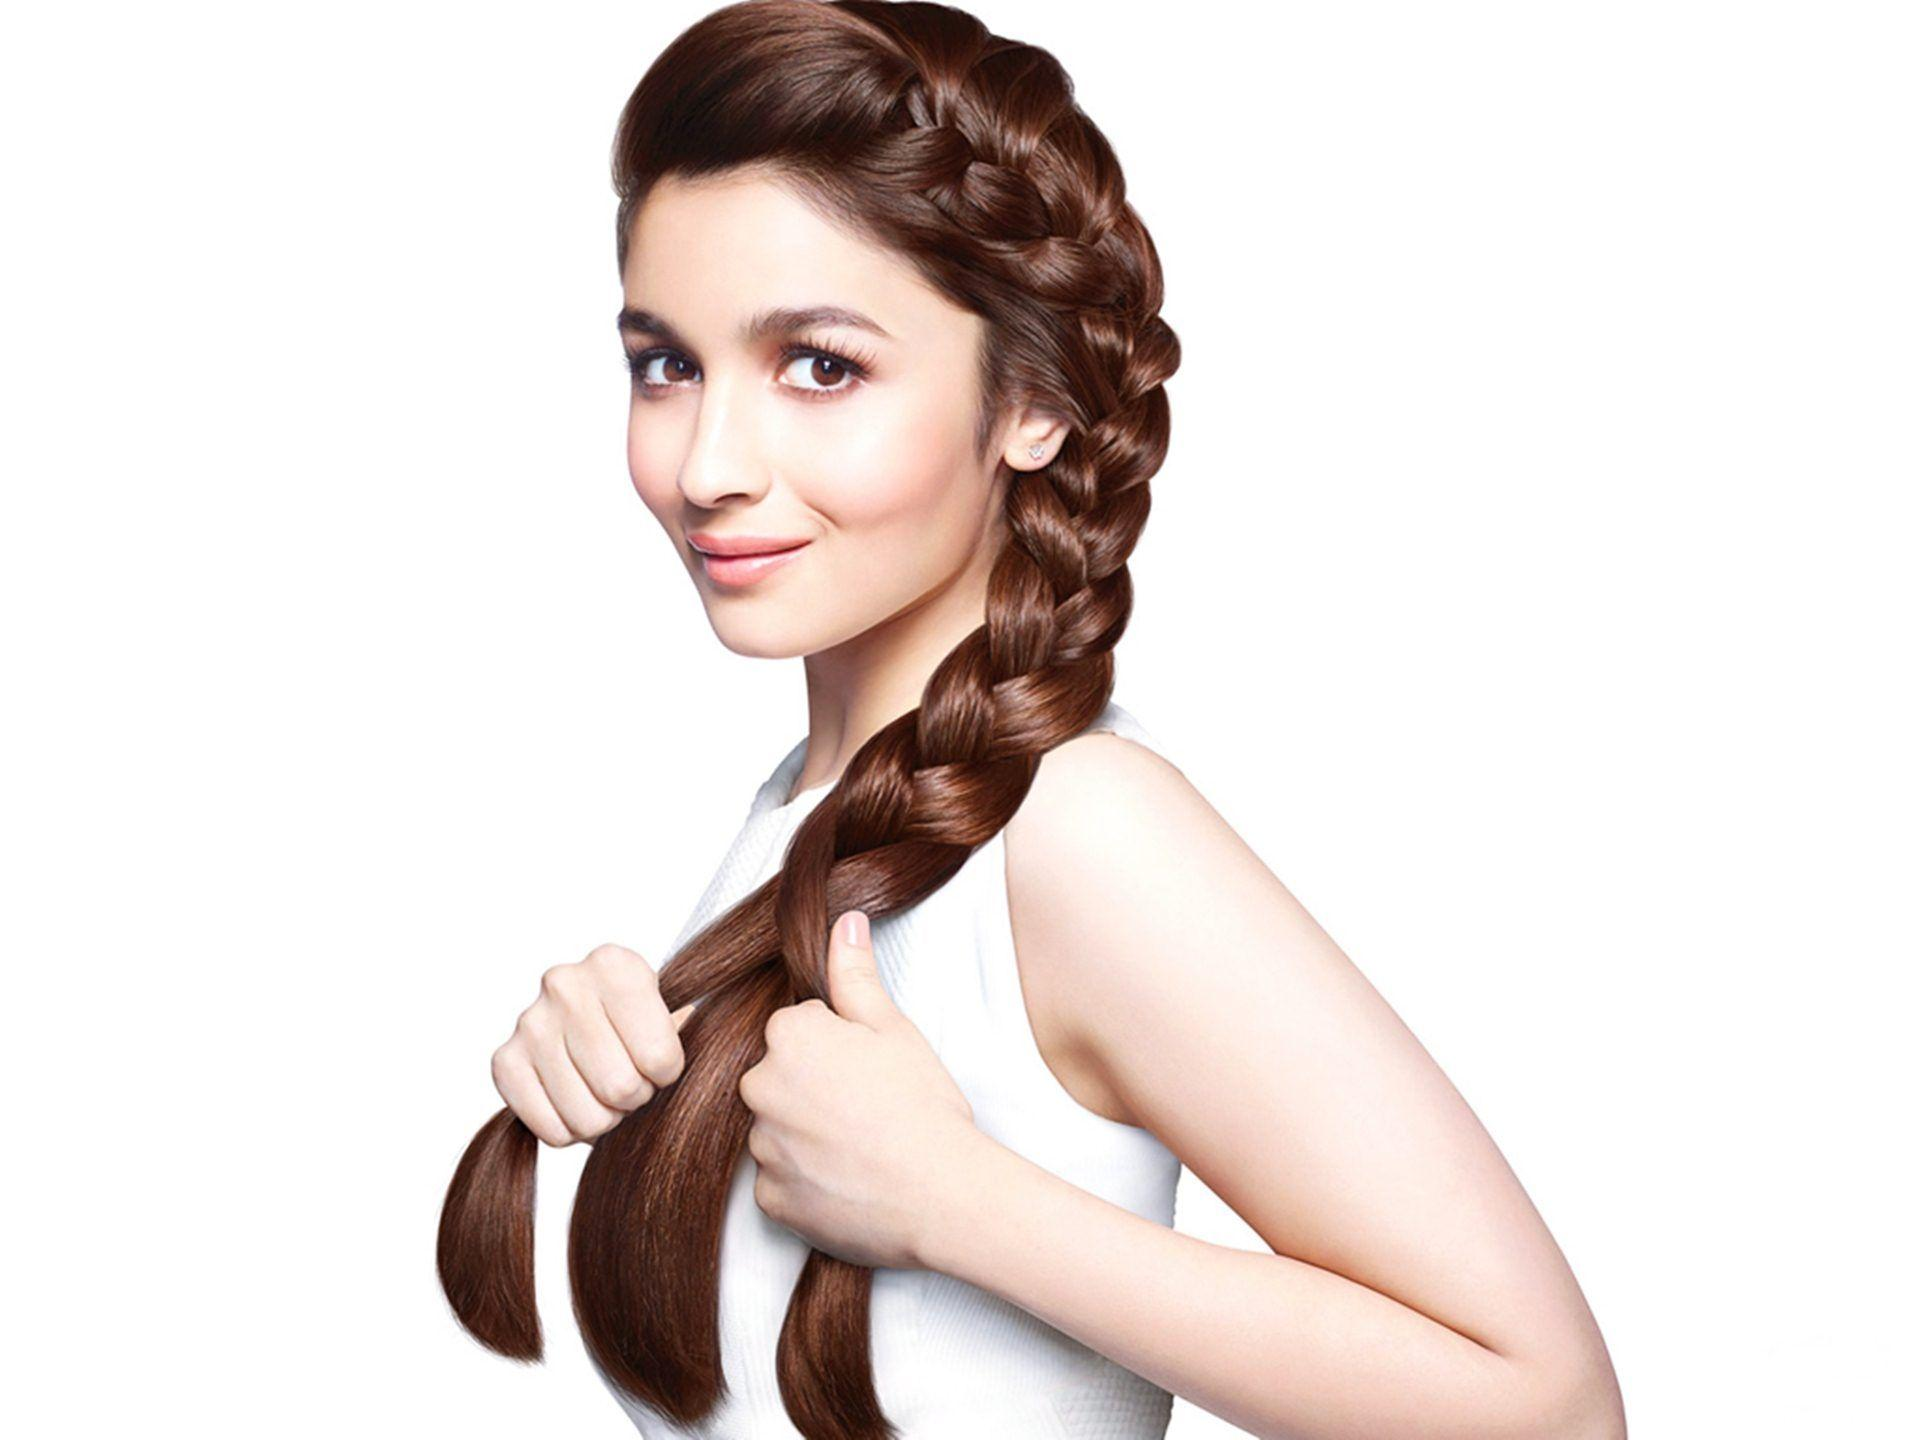 Hairstyles Wallpapers Wallpaper Cave